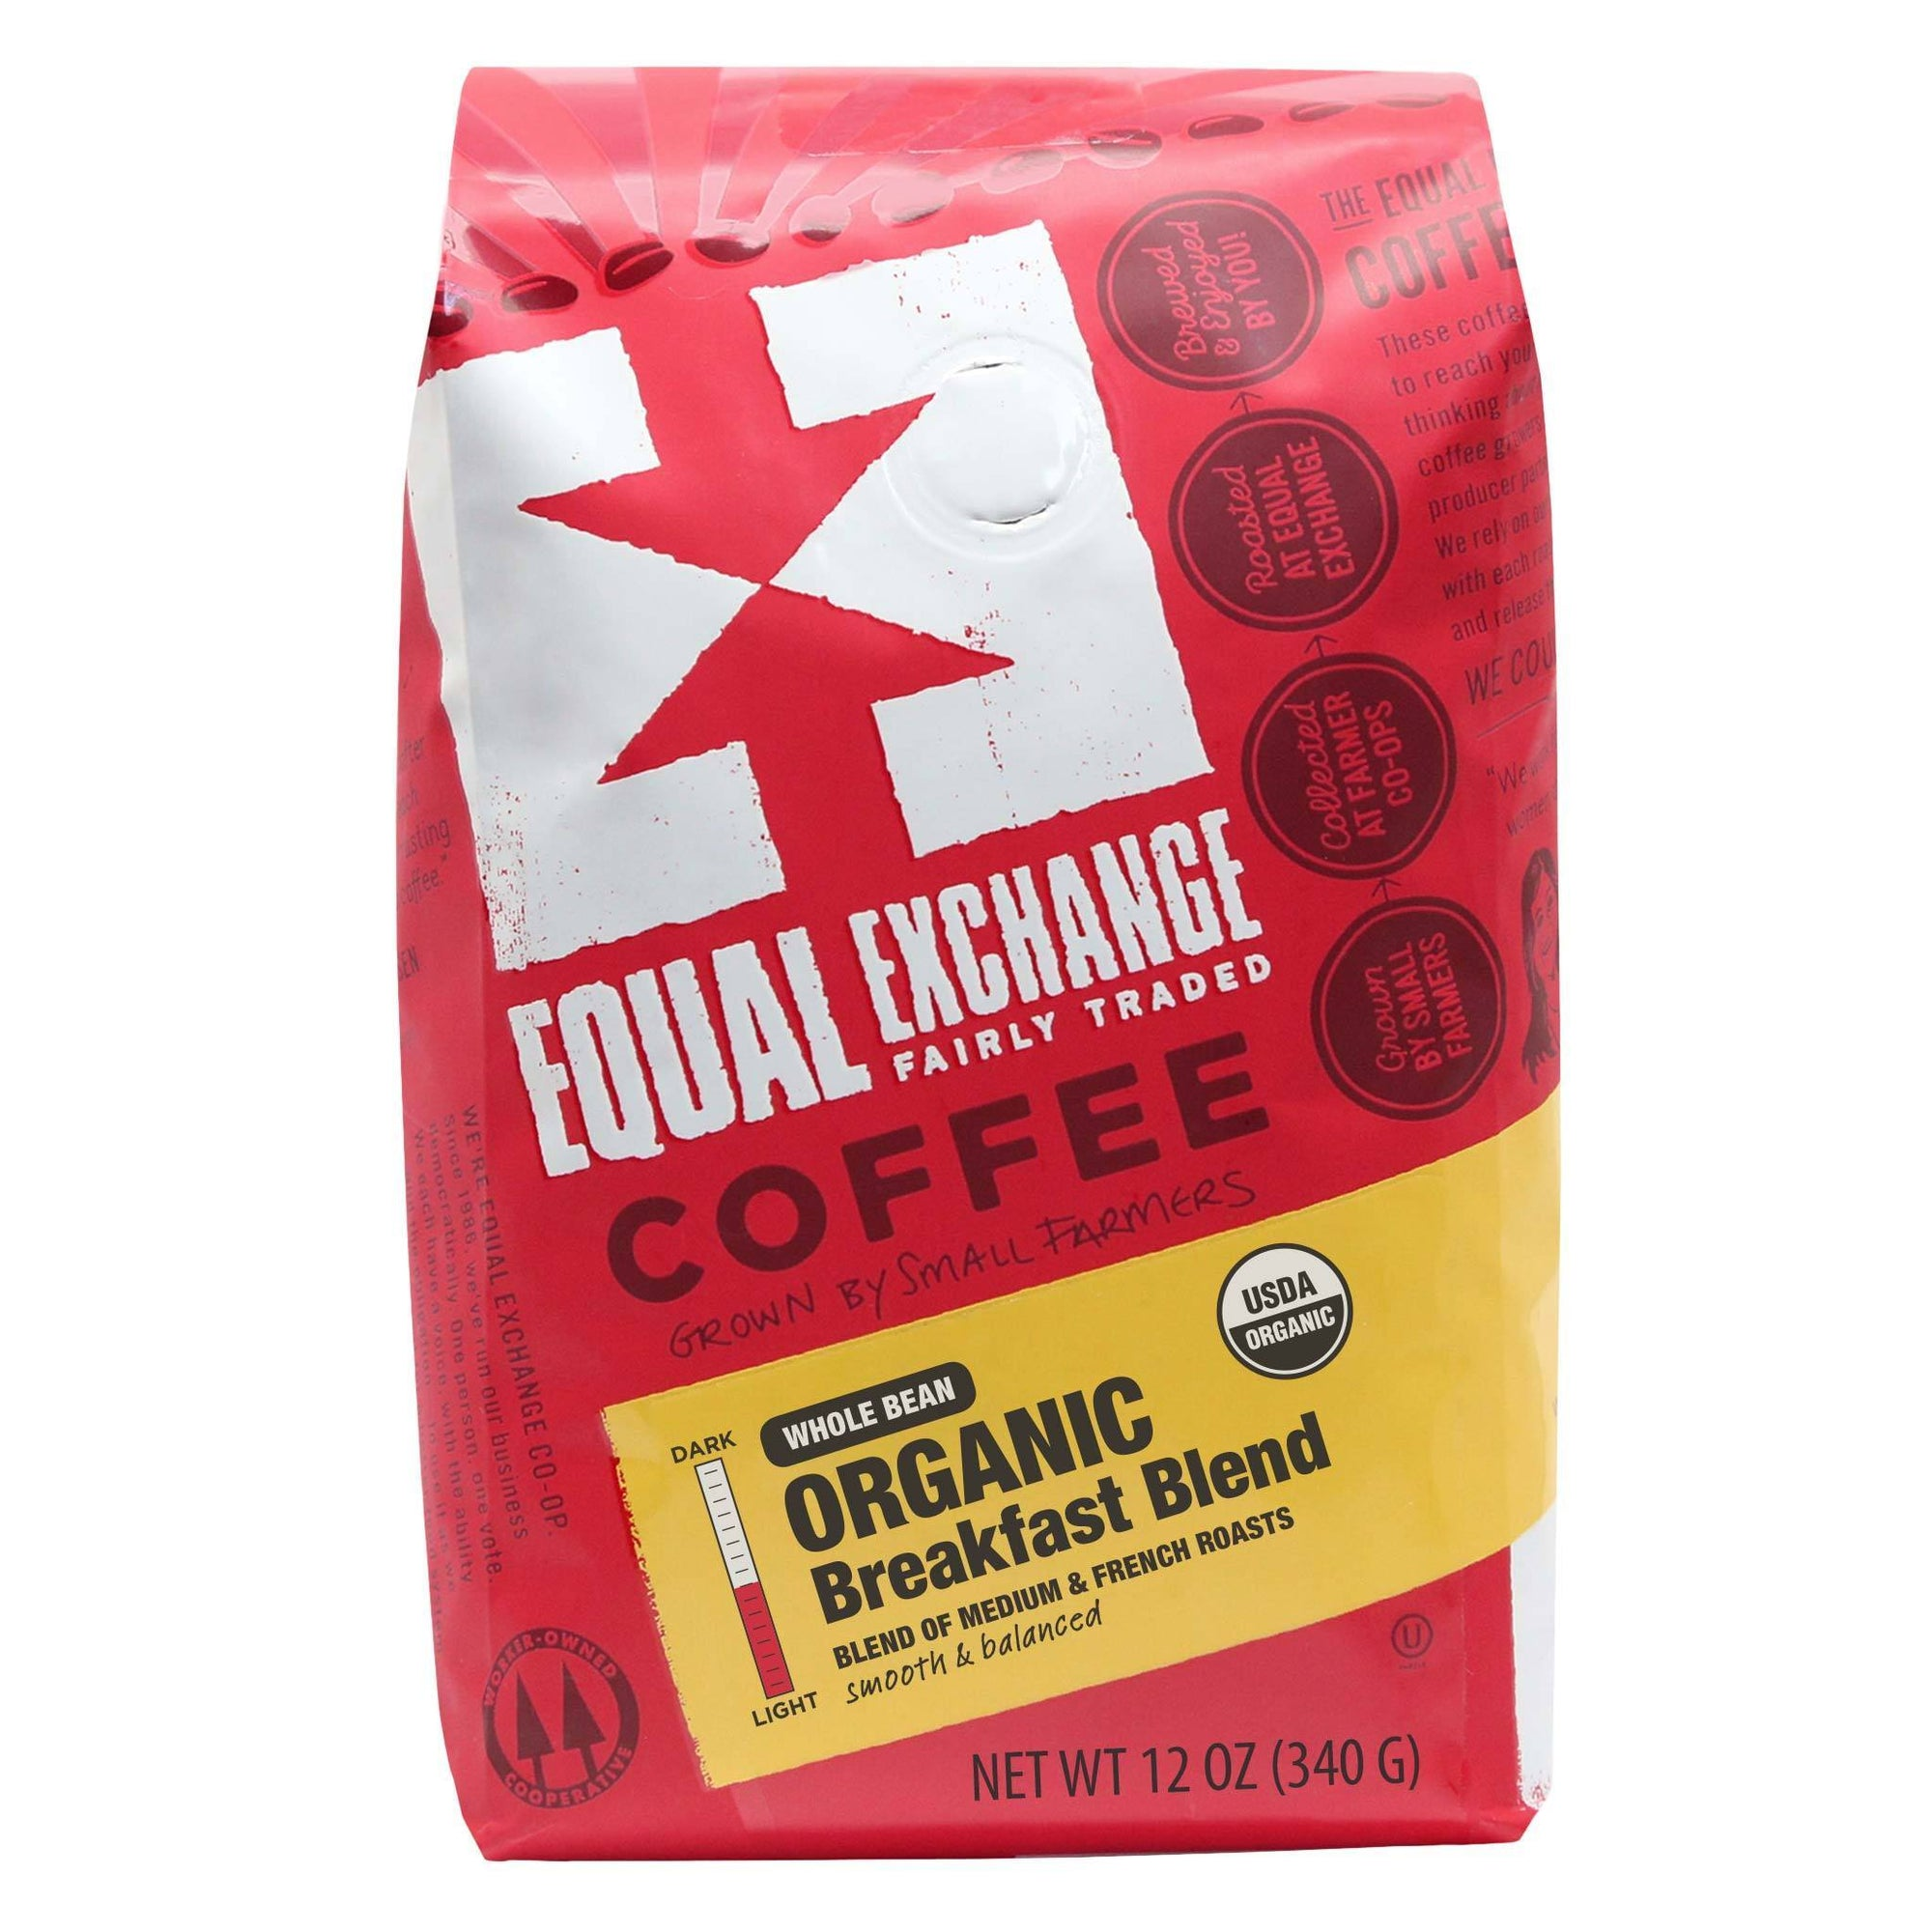 Breakfast Blend Organic Coffee 12oz- Equal Exchange - Whole Beans